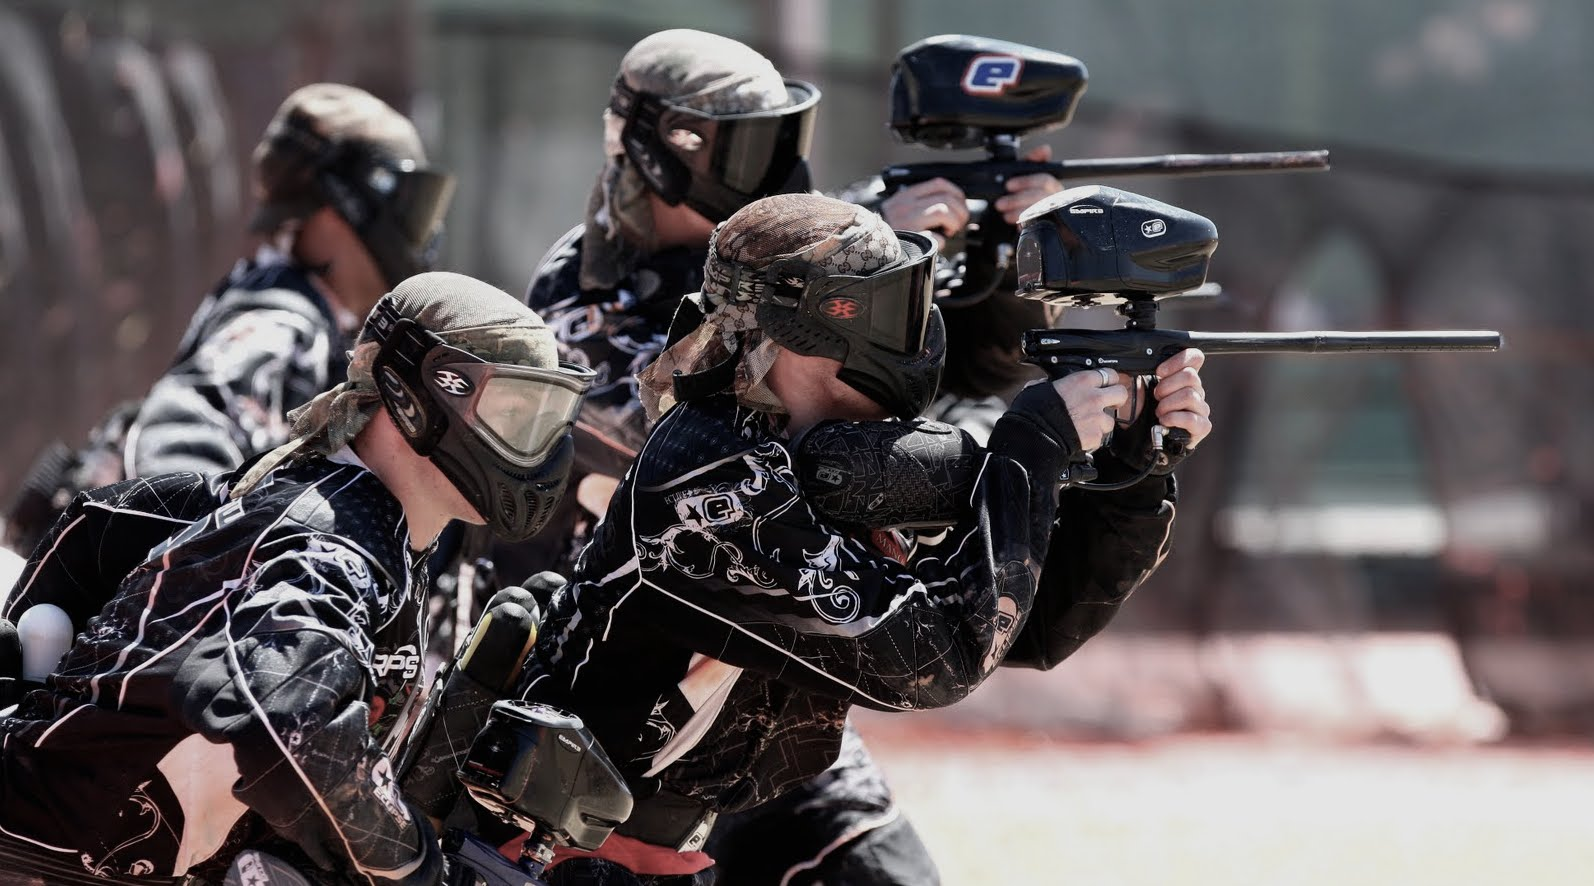 How to Start an Indoor Paintball Business